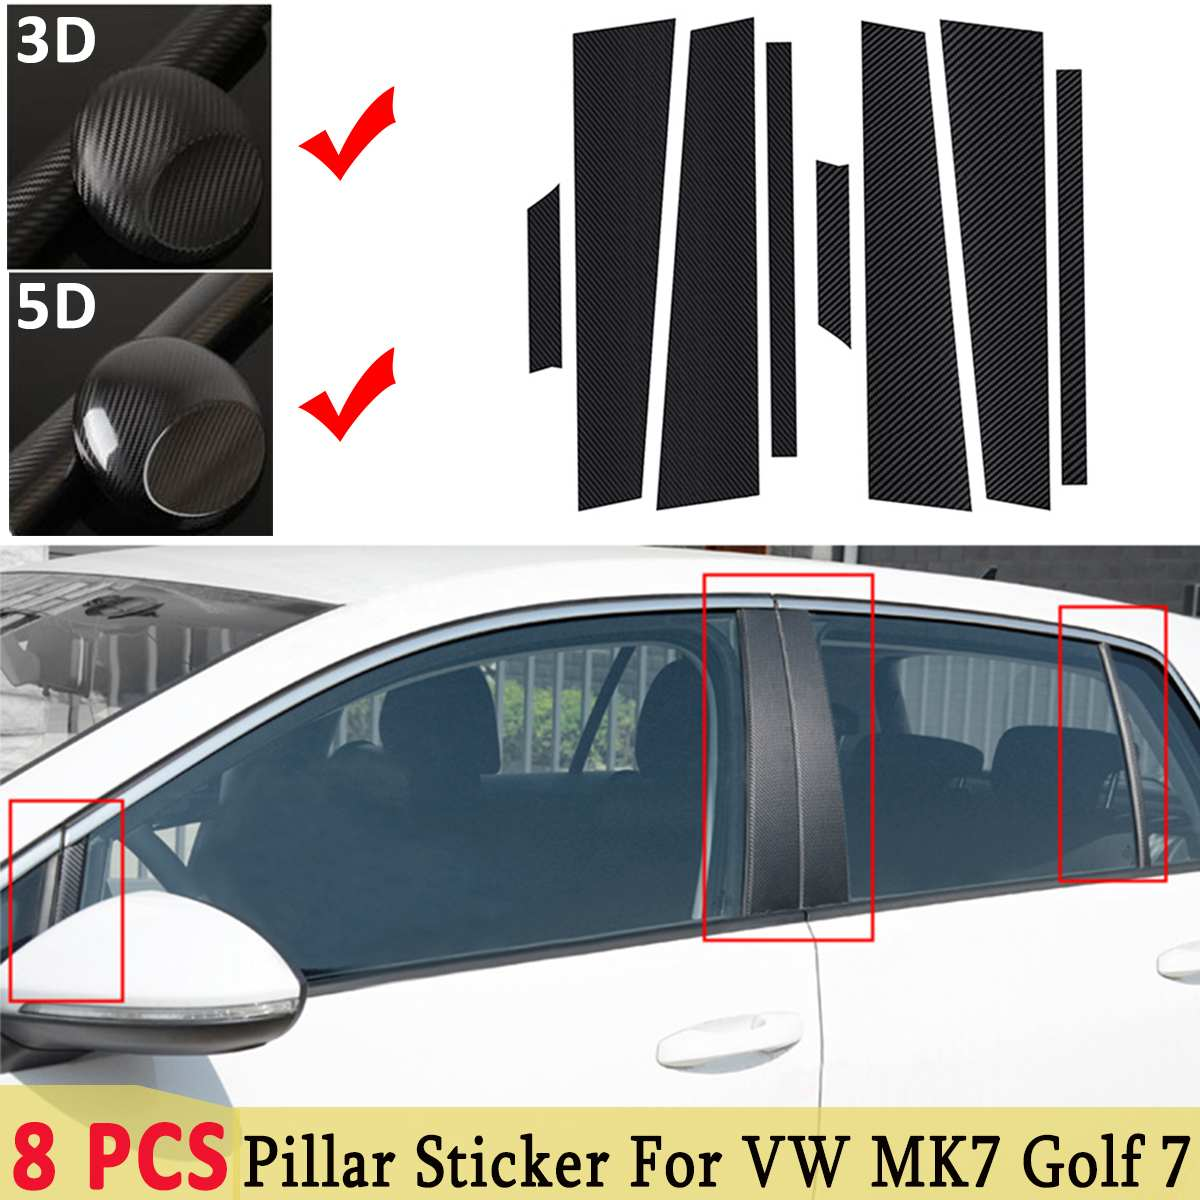 3D / 5D <font><b>Carbon</b></font> <font><b>Fiber</b></font> Style Auto Window Frame ABC Pillar Film Sticker Decals Trim For Volkswagen For VW MK7 <font><b>Golf</b></font> <font><b>7</b></font> Accessories image